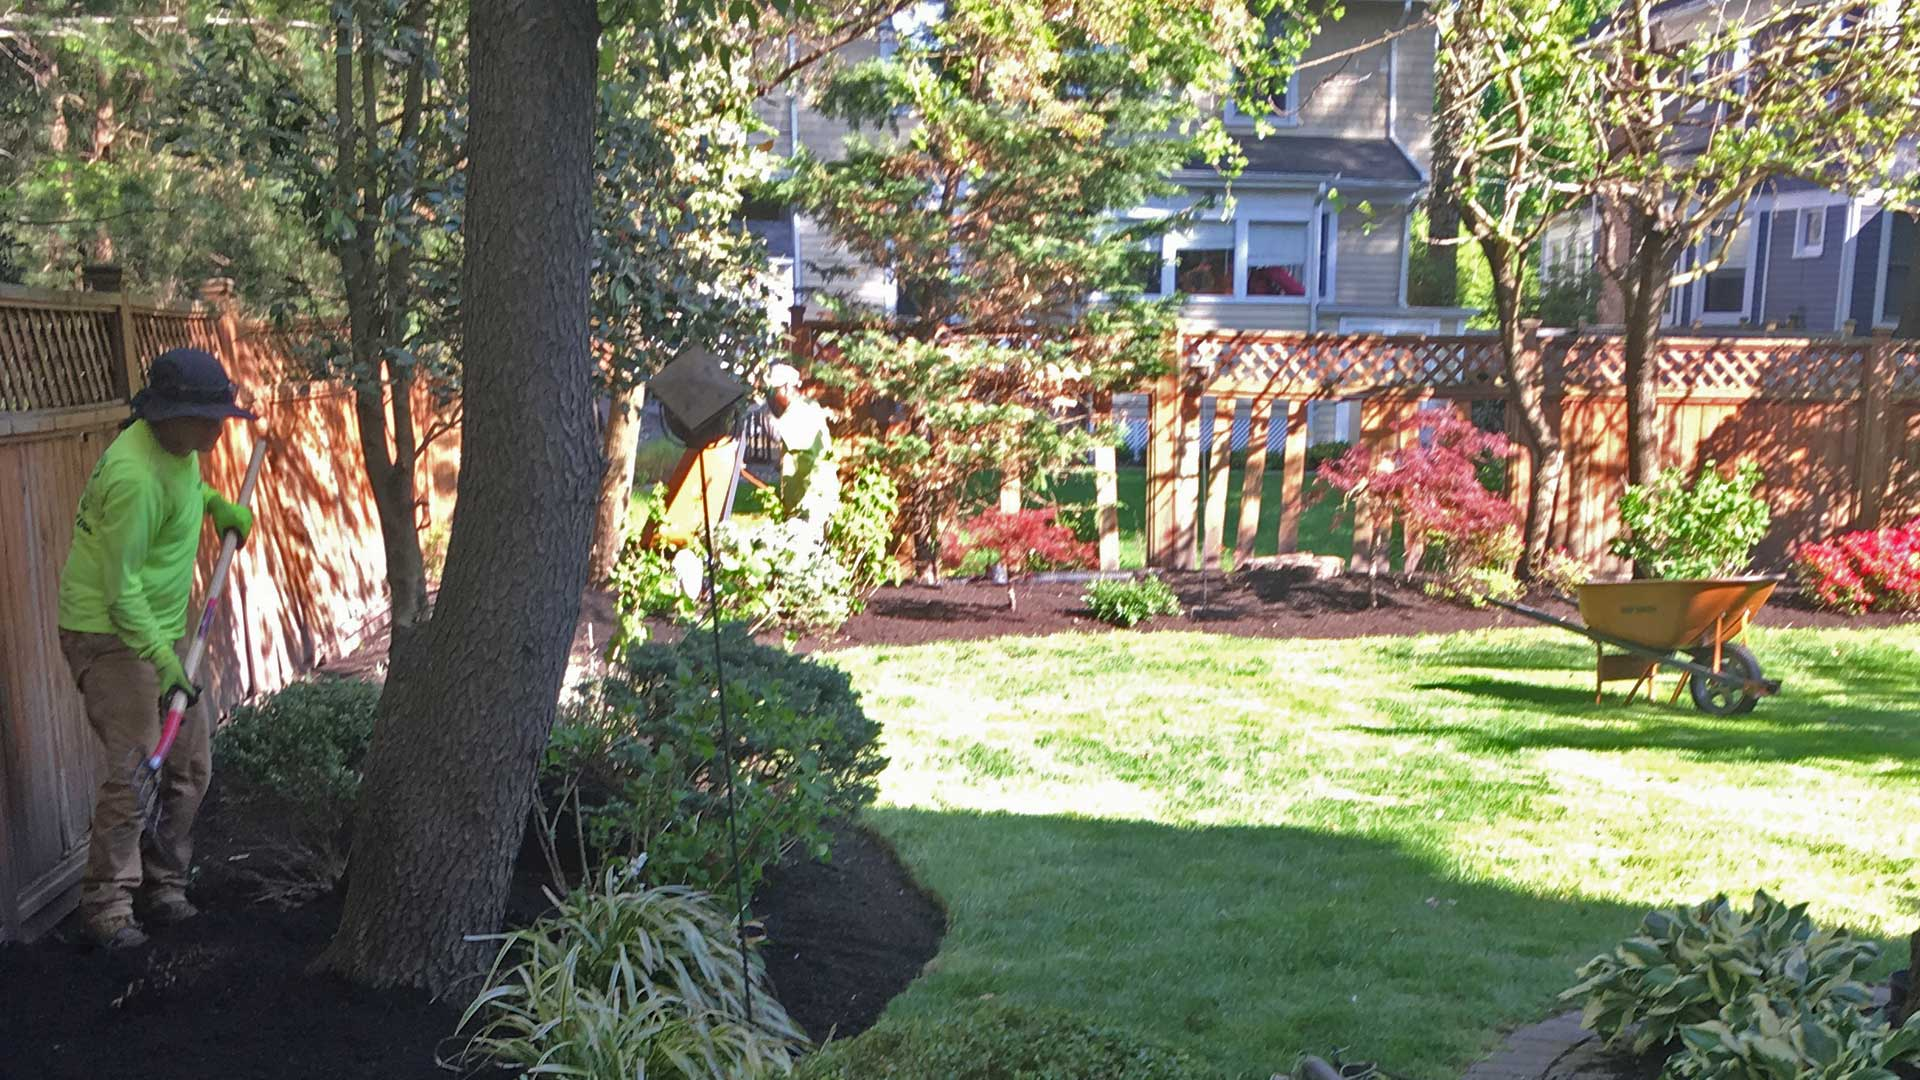 Apply for a career with Greenscapes Landscape Management in Westfield, NJ.